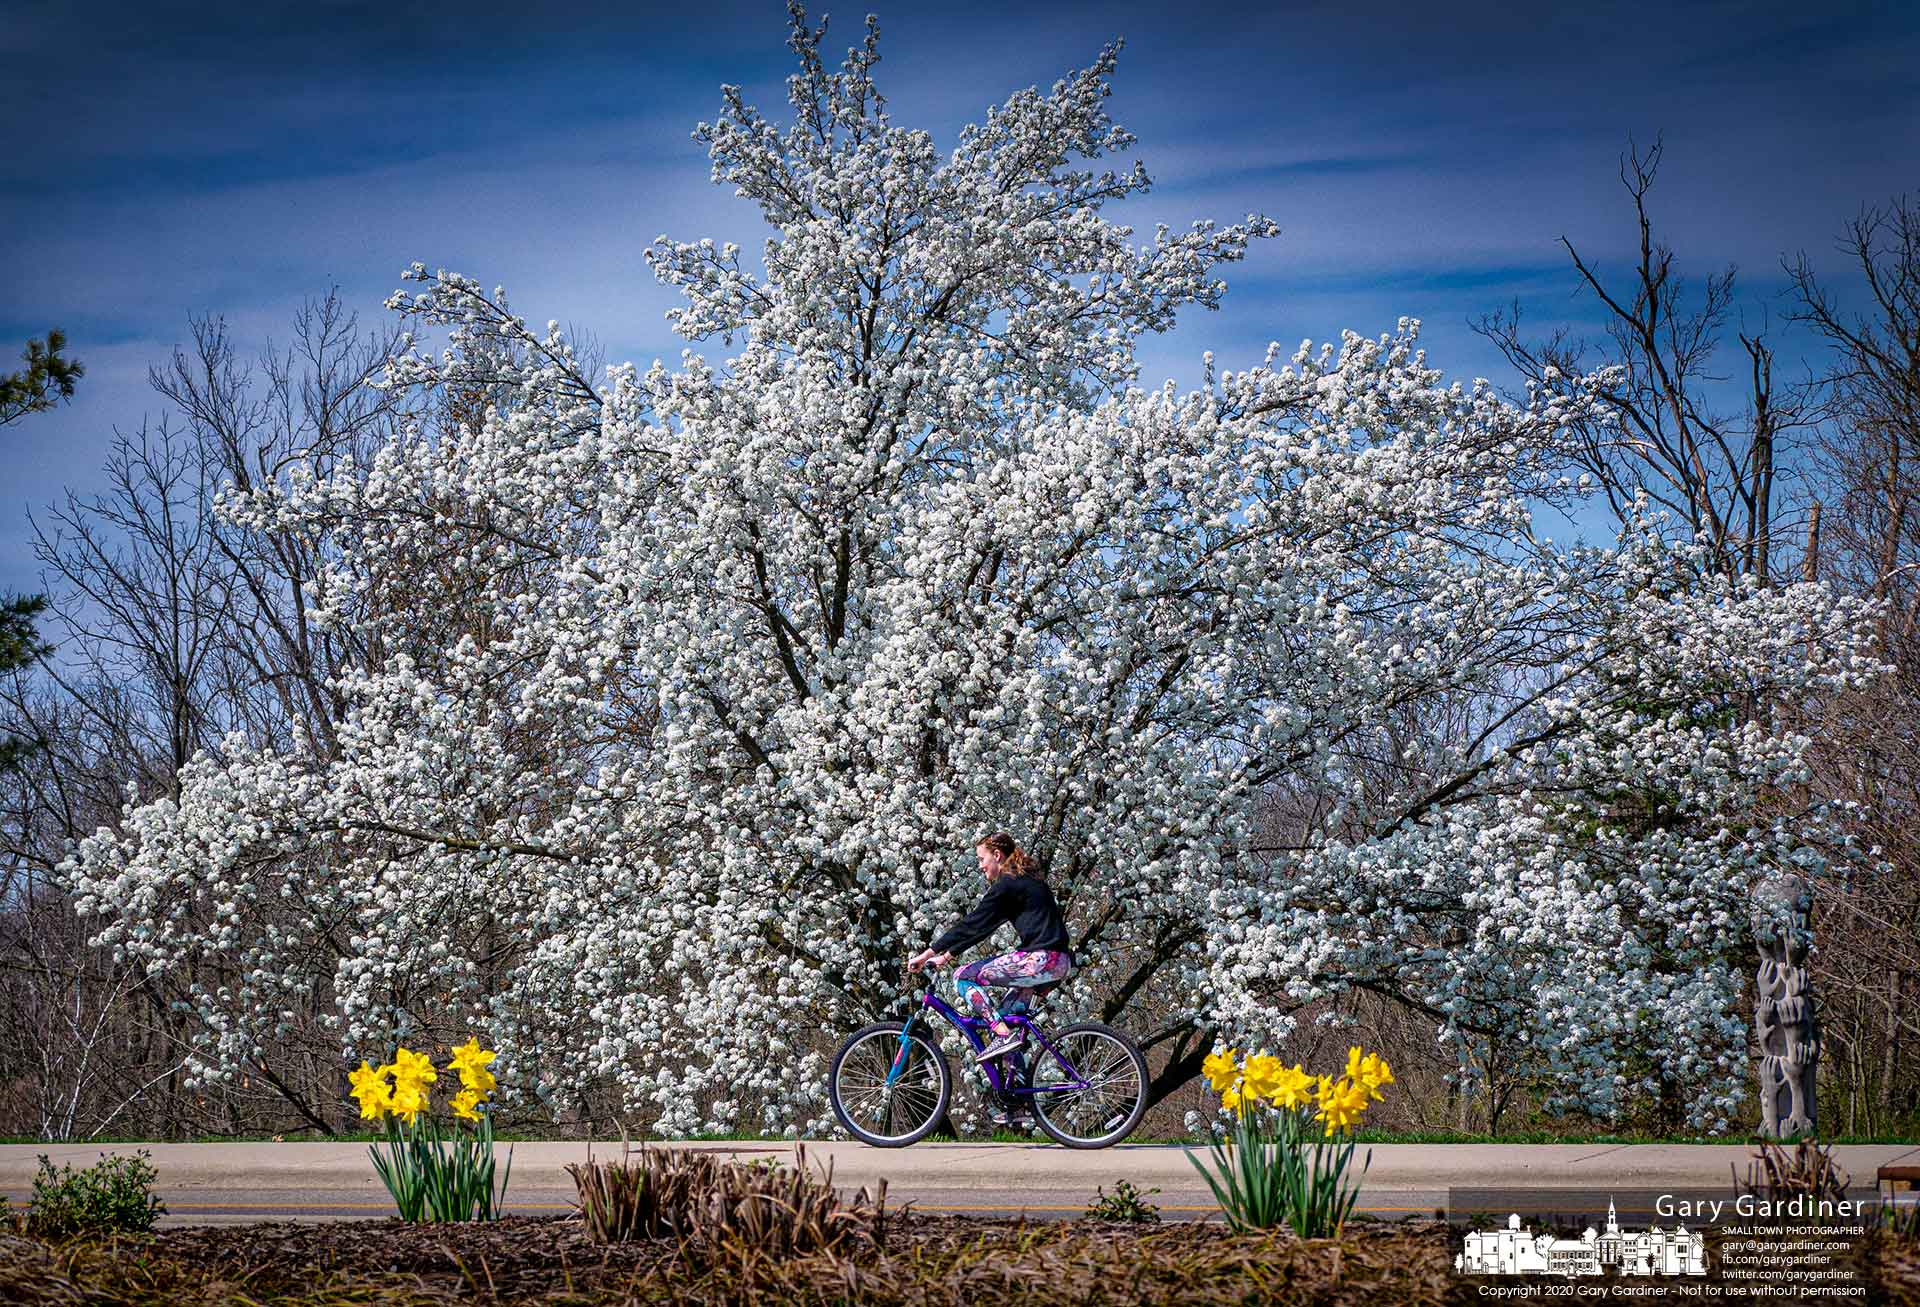 A young girl pedals along the sidewalk past flowering Bradford pear trees in Astronaut Park on West Main Street. My Final Photo for April 4, 2020.